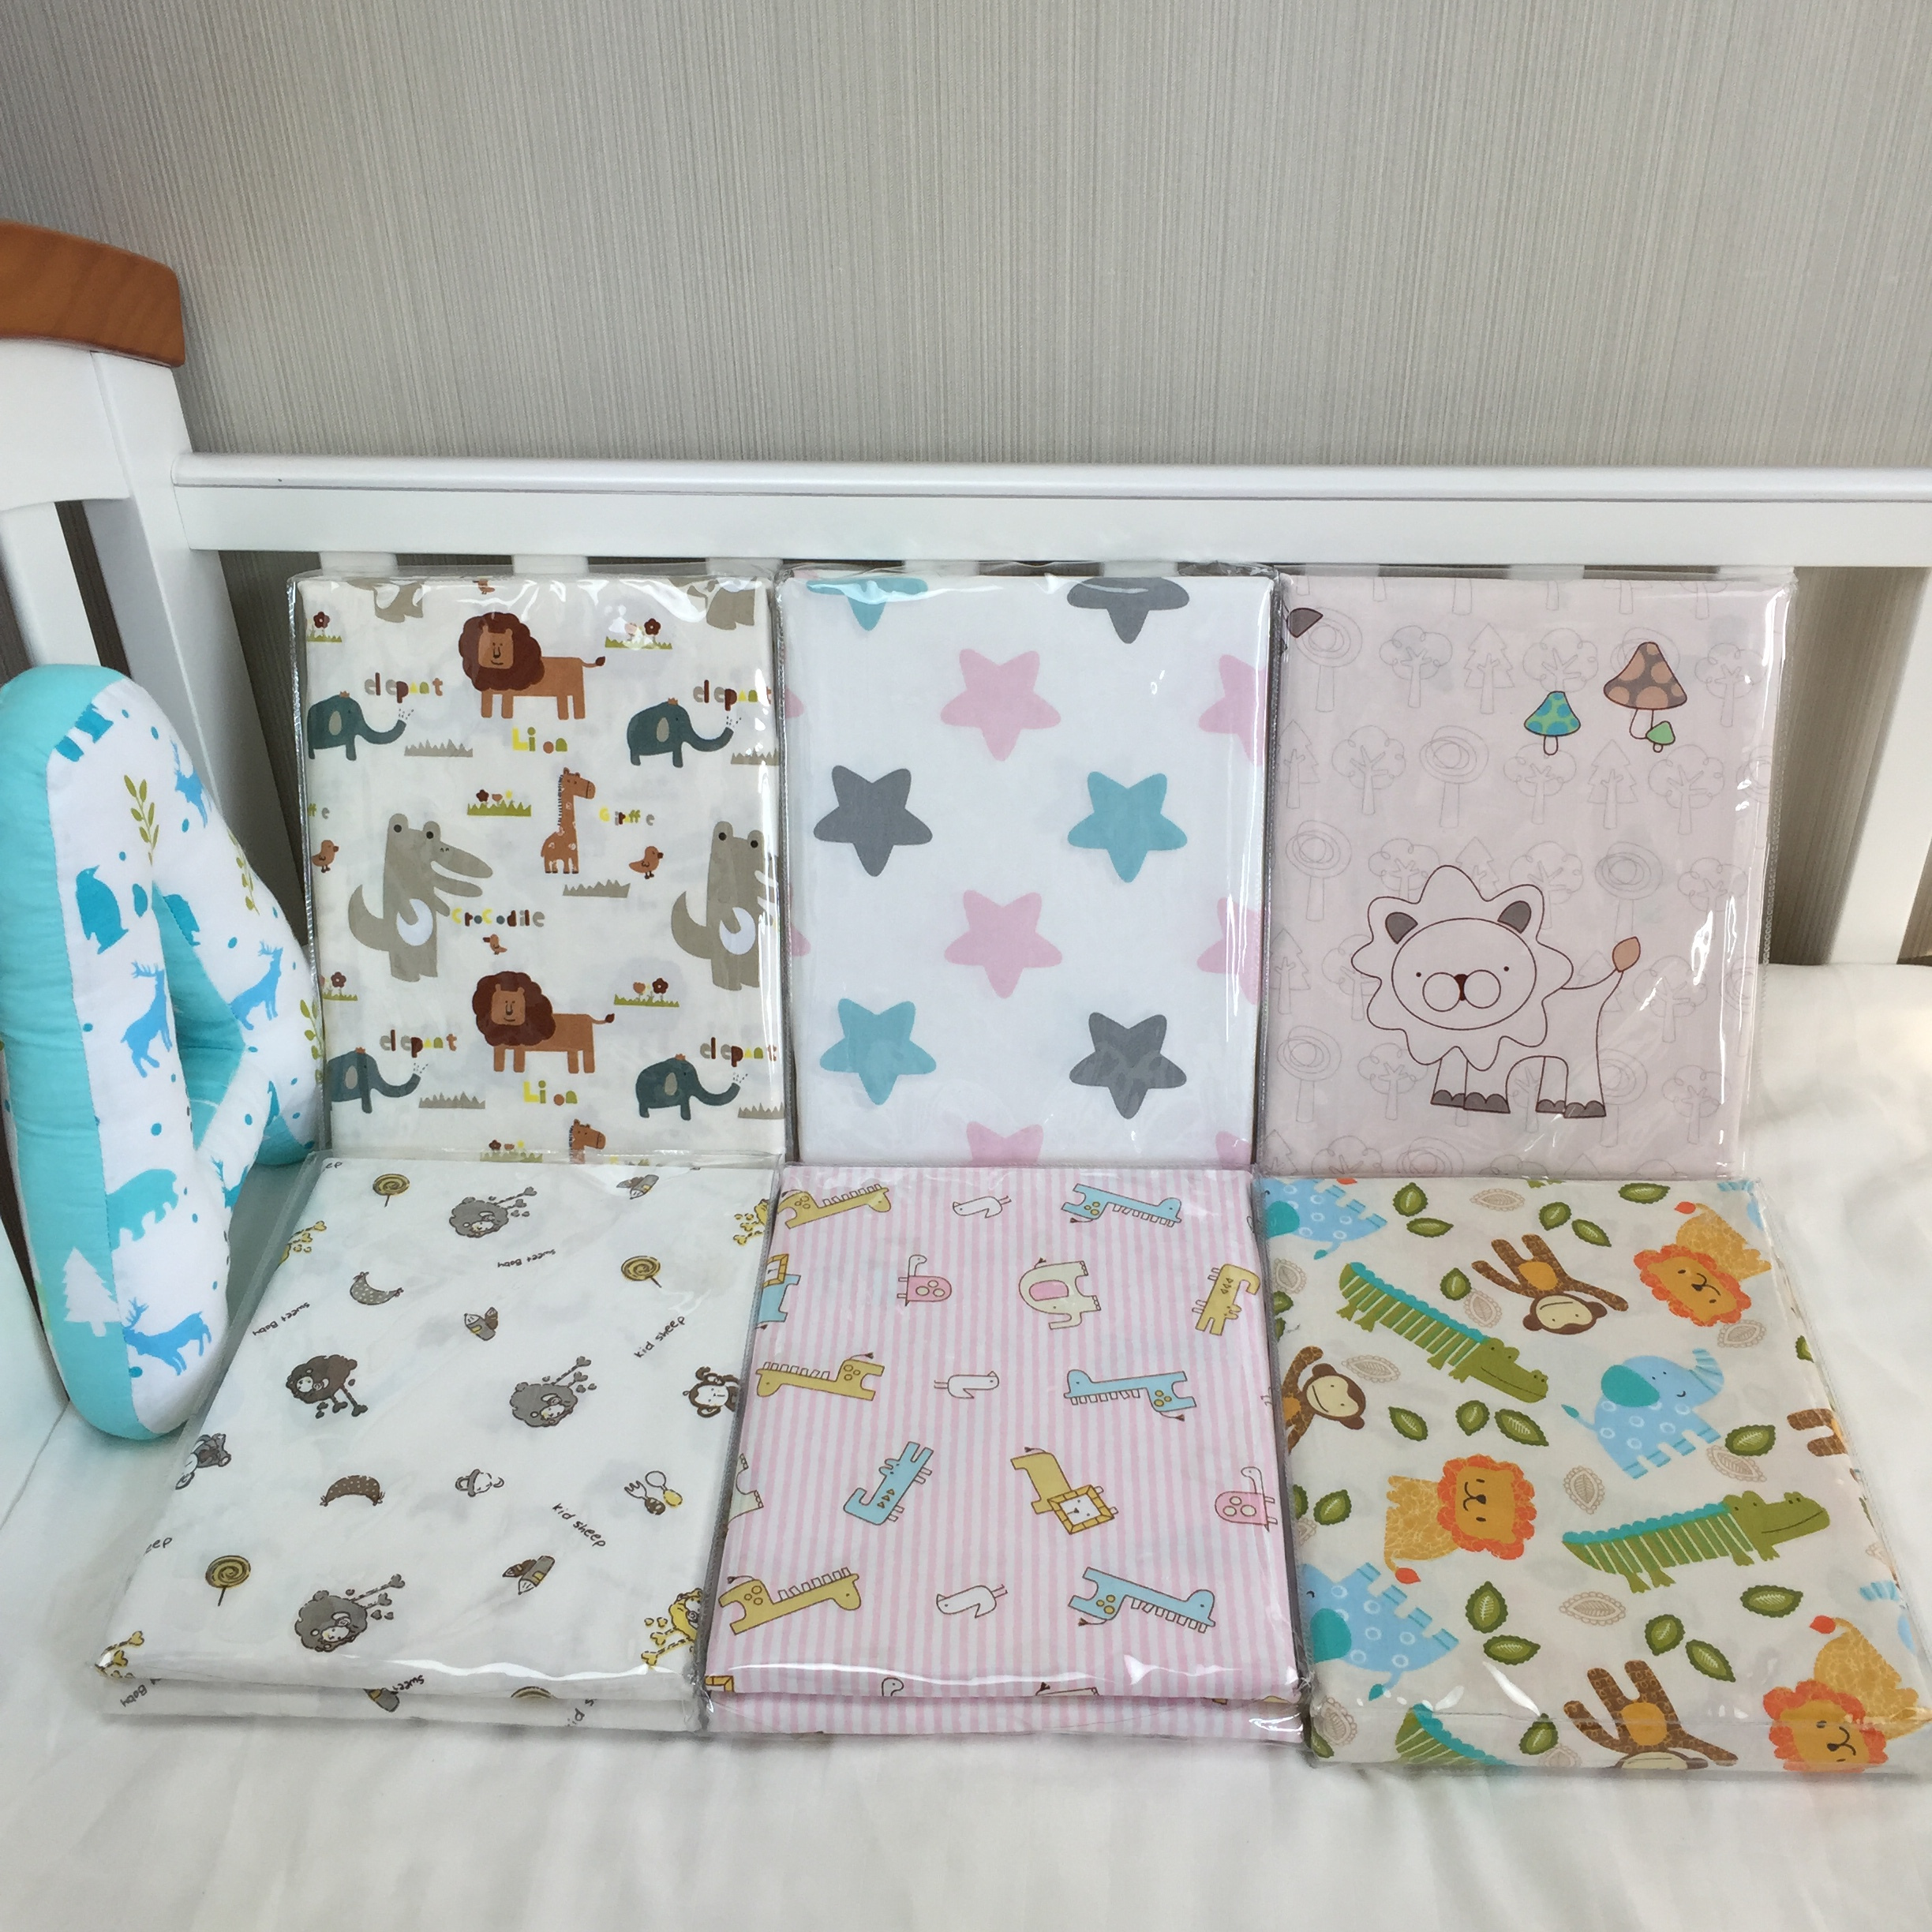 Baby bed sheet pattern - Baby Sheets Bed Newborn Cotton Cartoon Pattern Natural Printing Bed Sheets Children Favorite Comfort Crib Sheets Bedding In Sheets From Mother Kids On